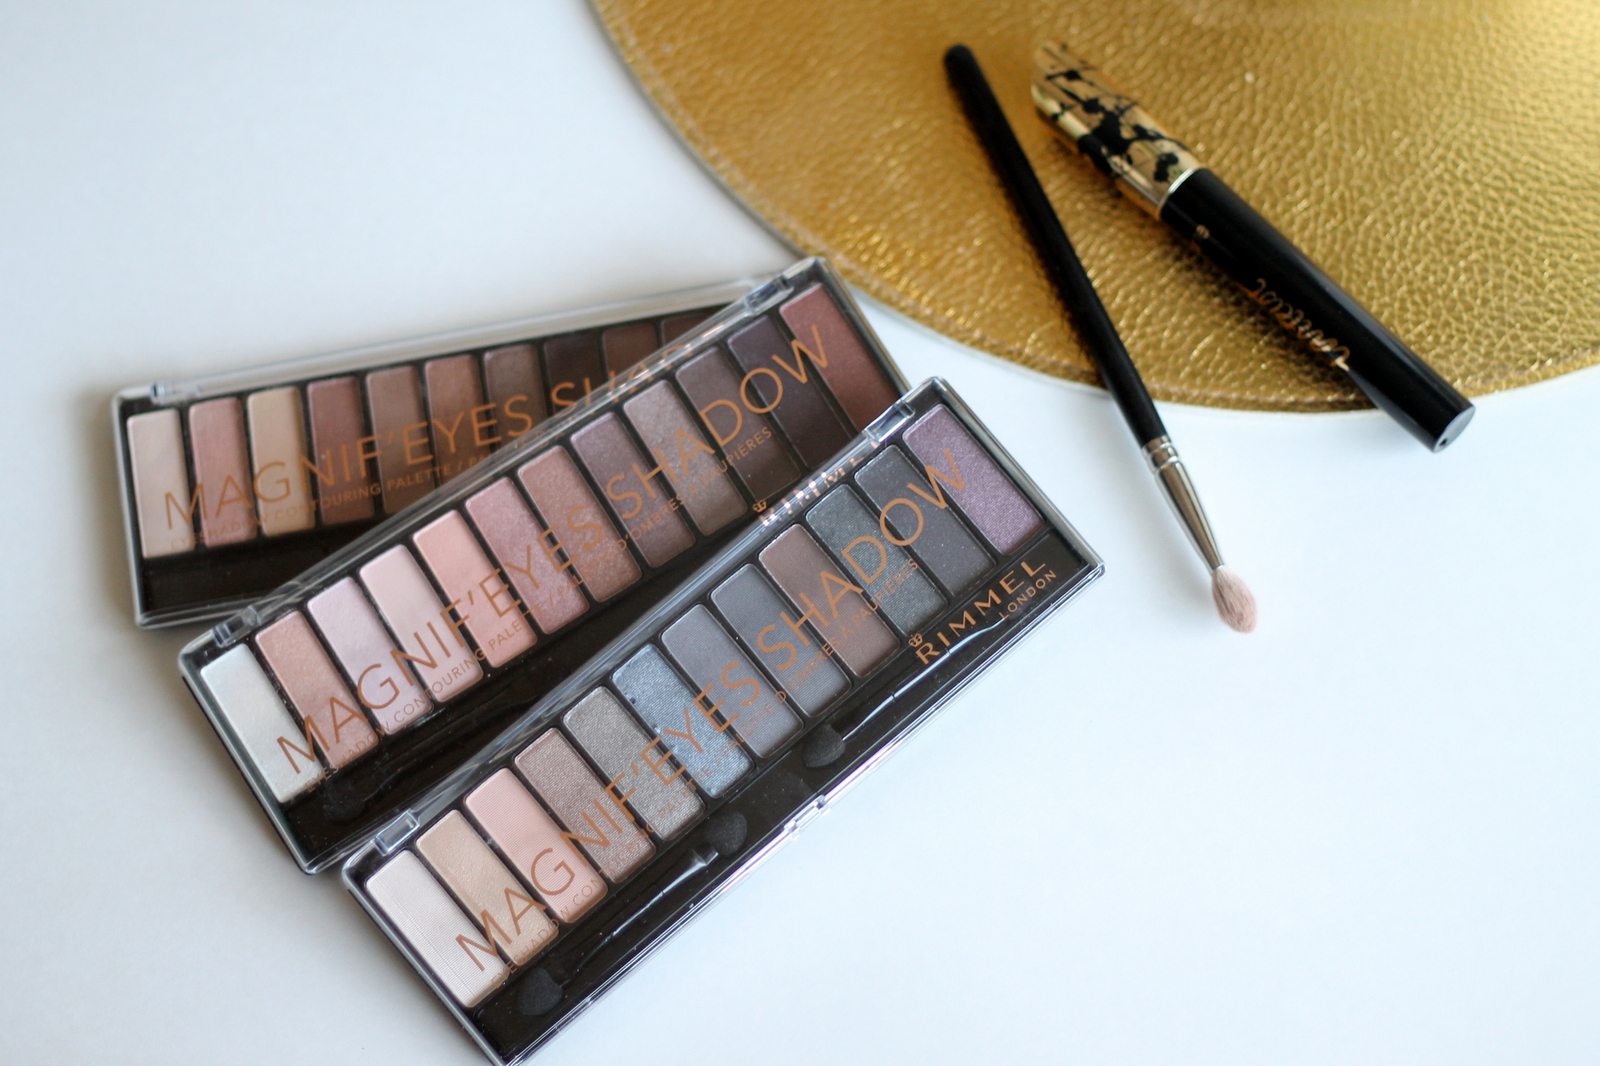 Magnif'eyes Shadow Palette Review | Re-Mix-Her